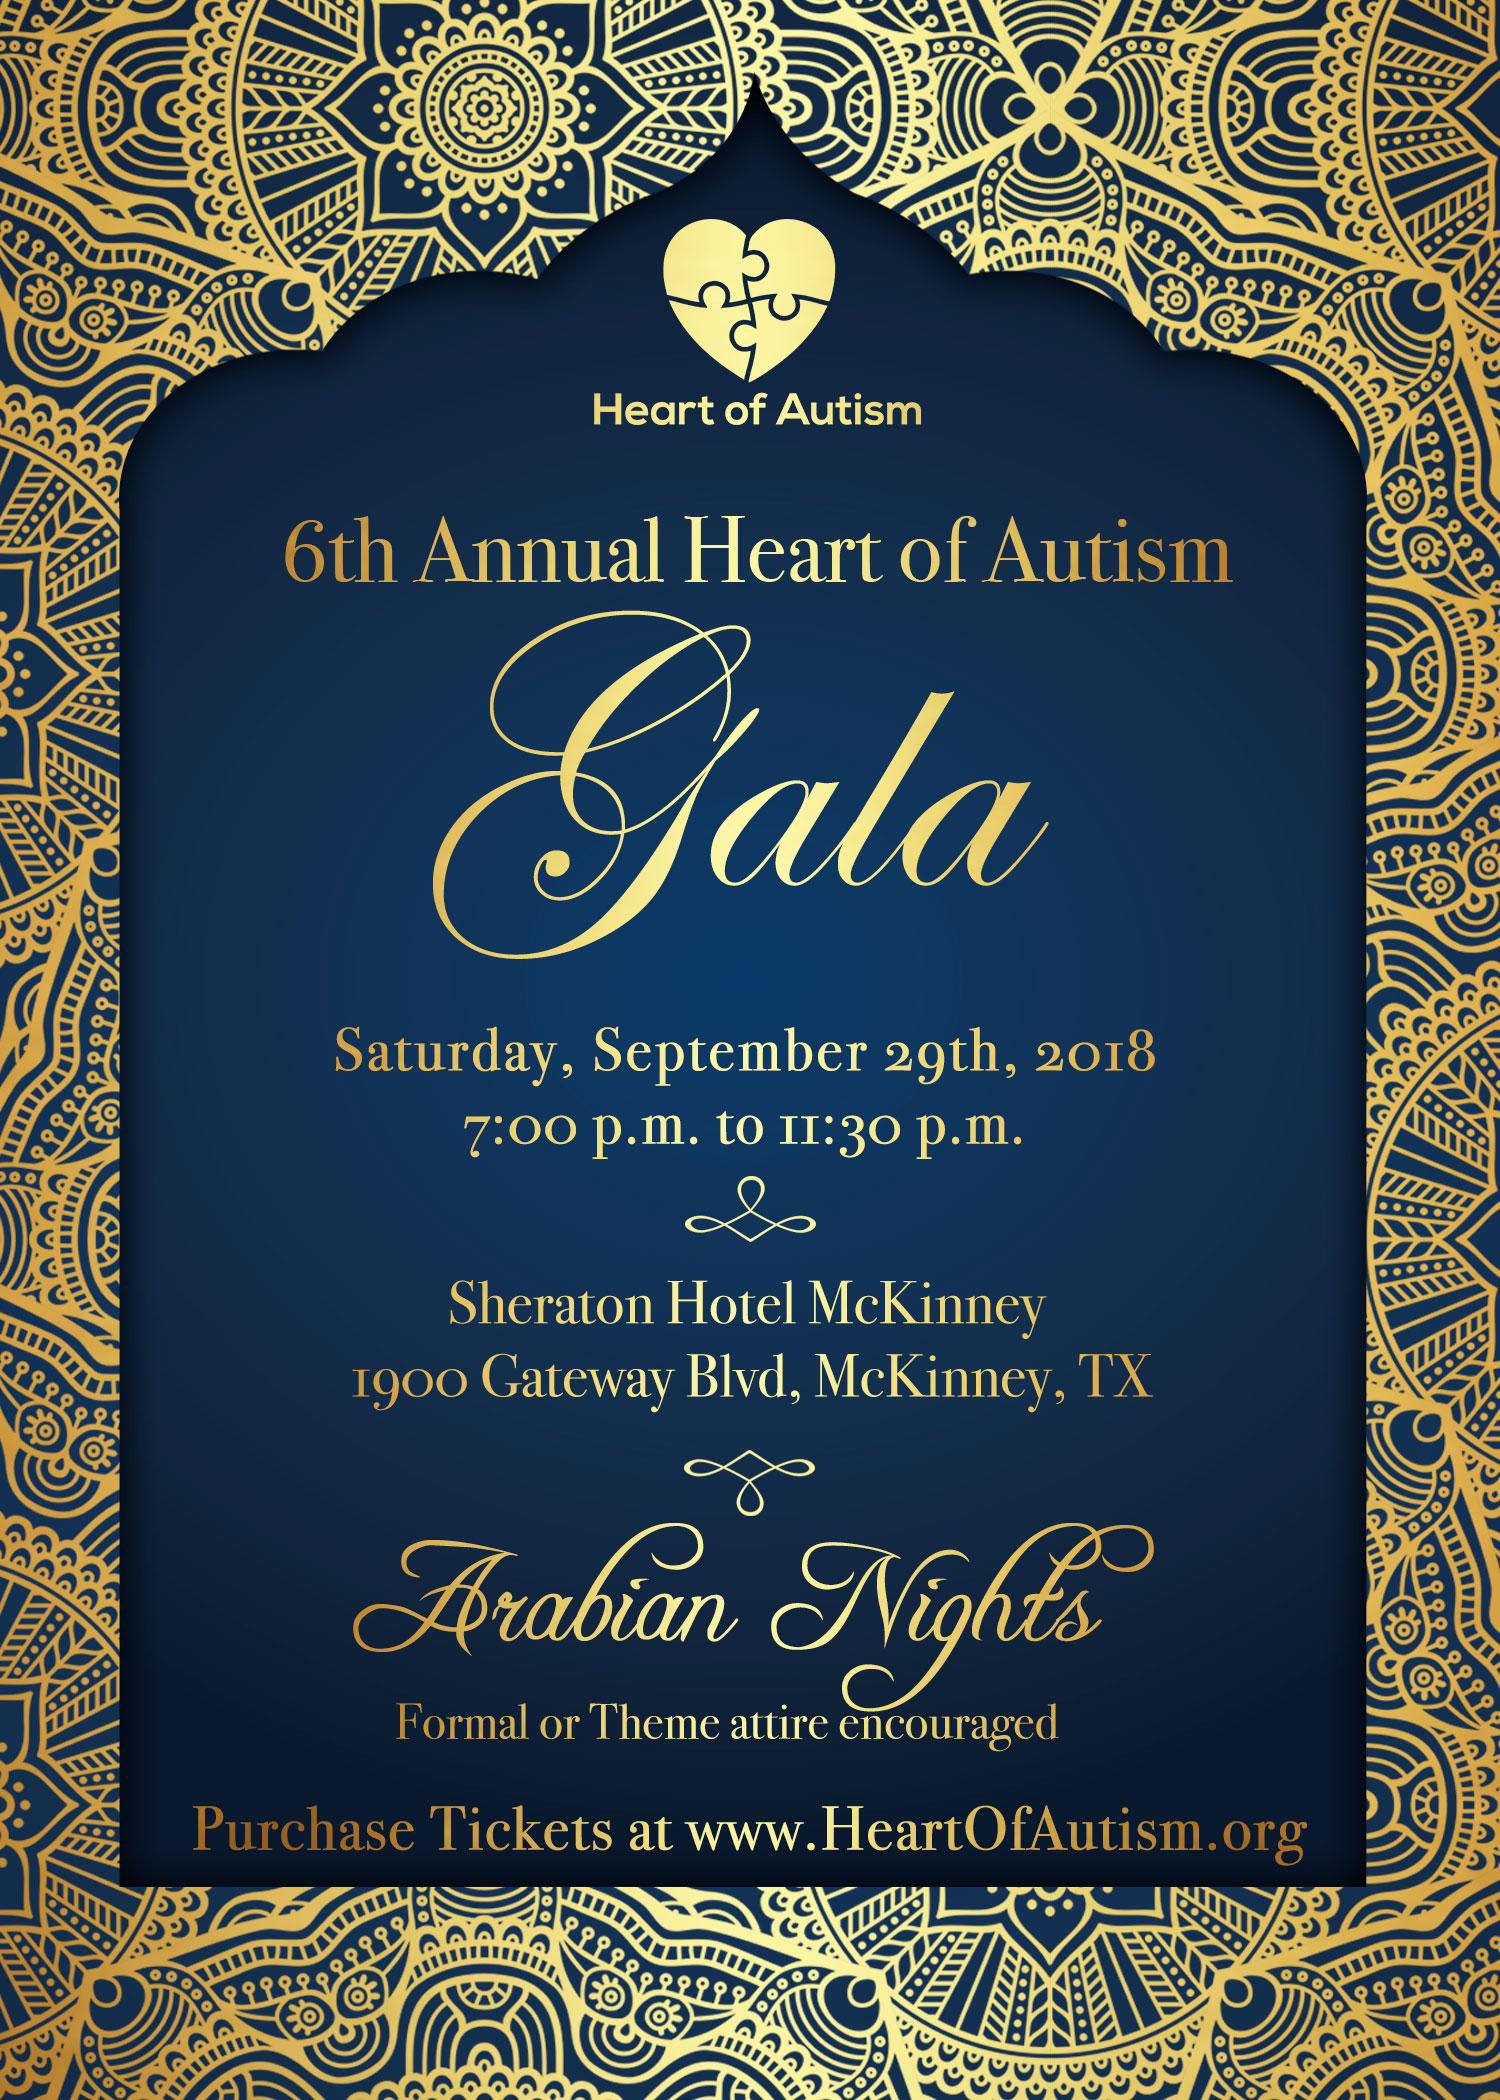 6th Annual Heart of Autism Gala